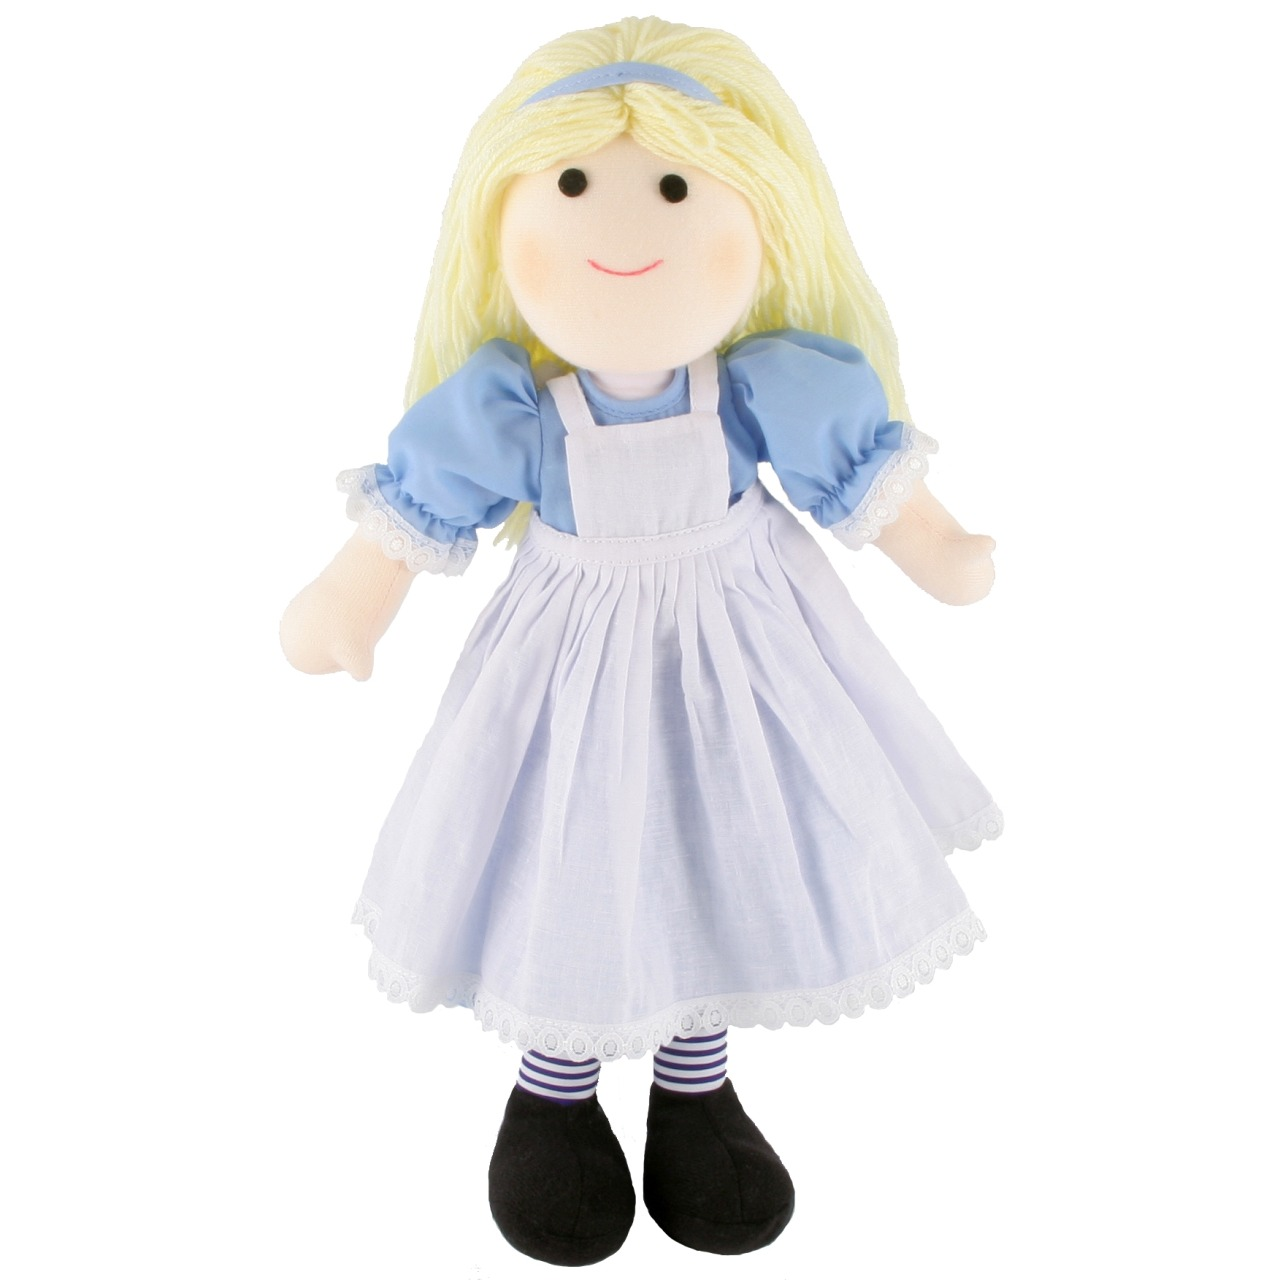 Meet Alice our rag doll from Alice in Wonderland, a beautiful rag doll ready to be your special friend! She is wearing a tradtional white pinafore over a blue blouse complete with blue striped tights.  Adorable!! I just want to squish her c: